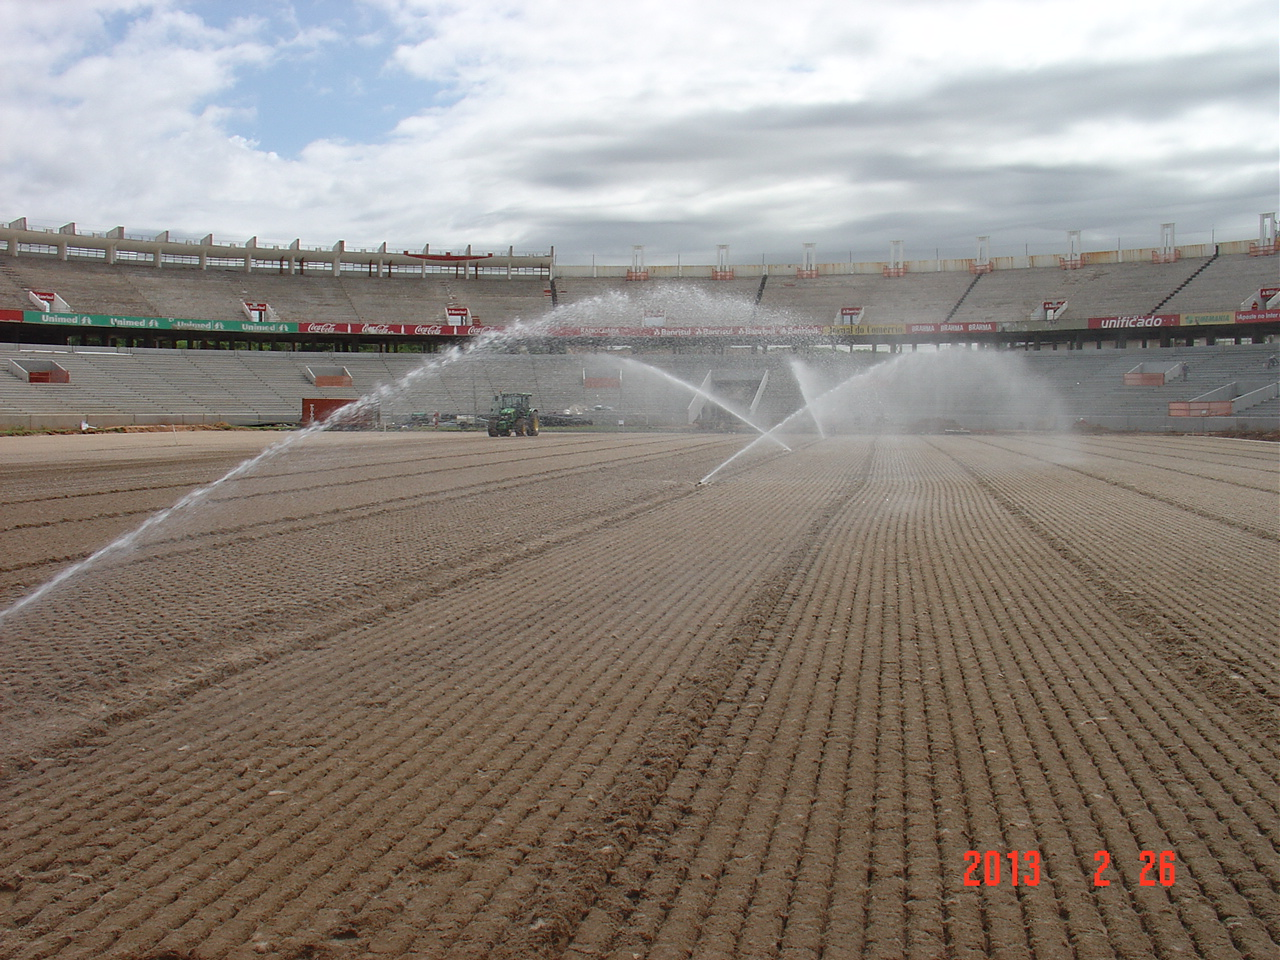 irrigating the surface